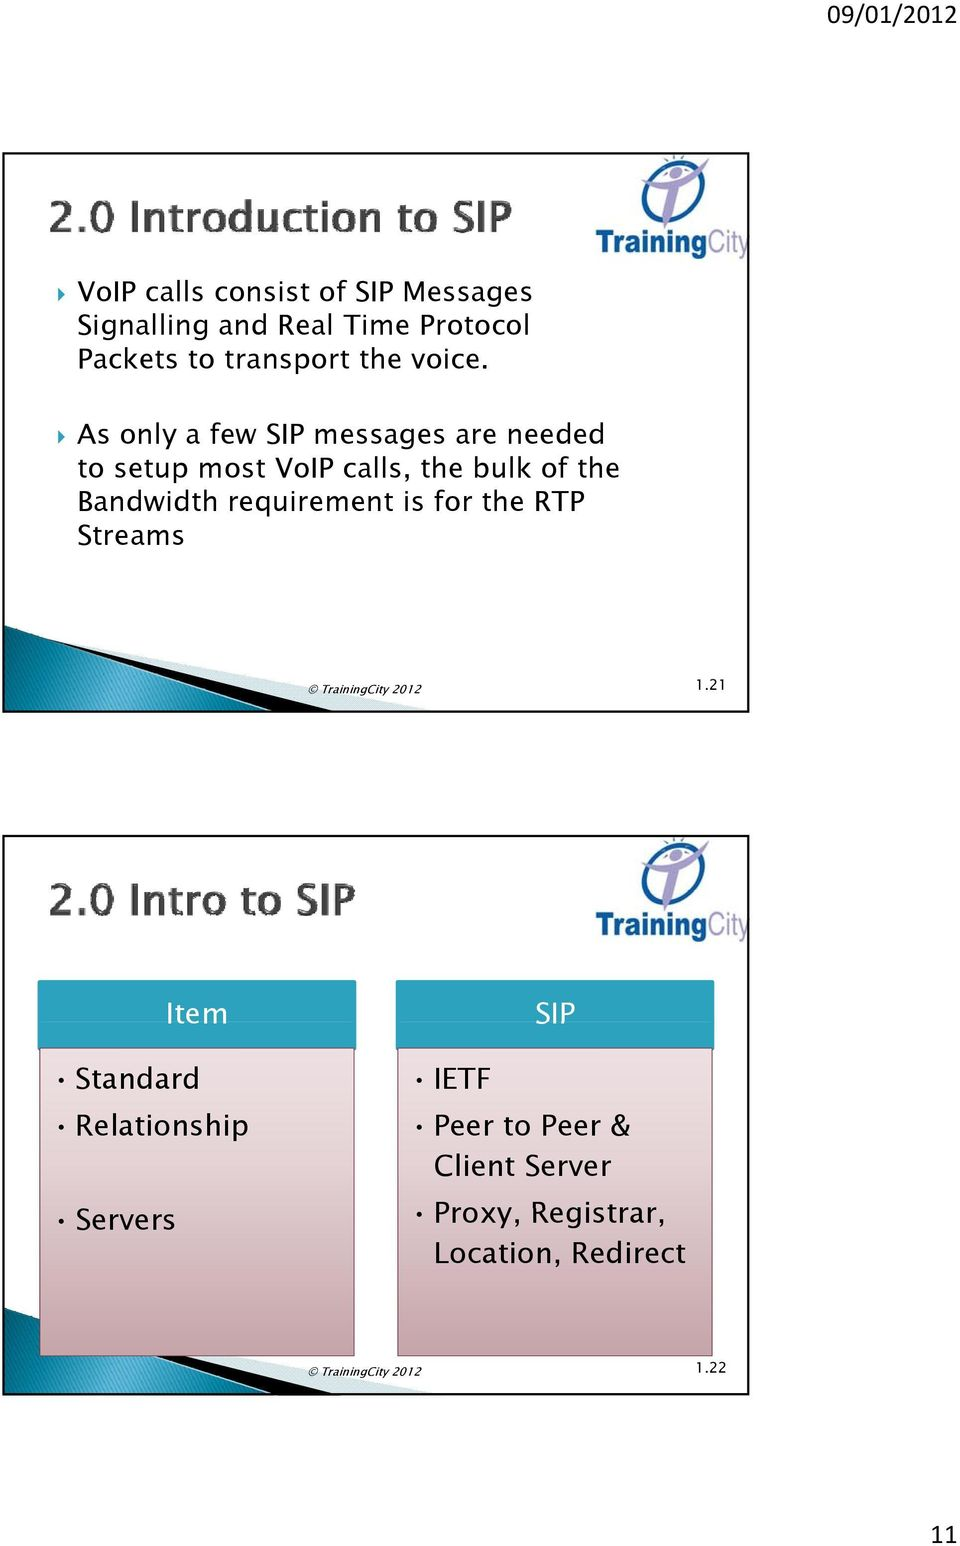 As only a few SIP messages are needed to setup most VoIP calls, the bulk of the Bandwidth